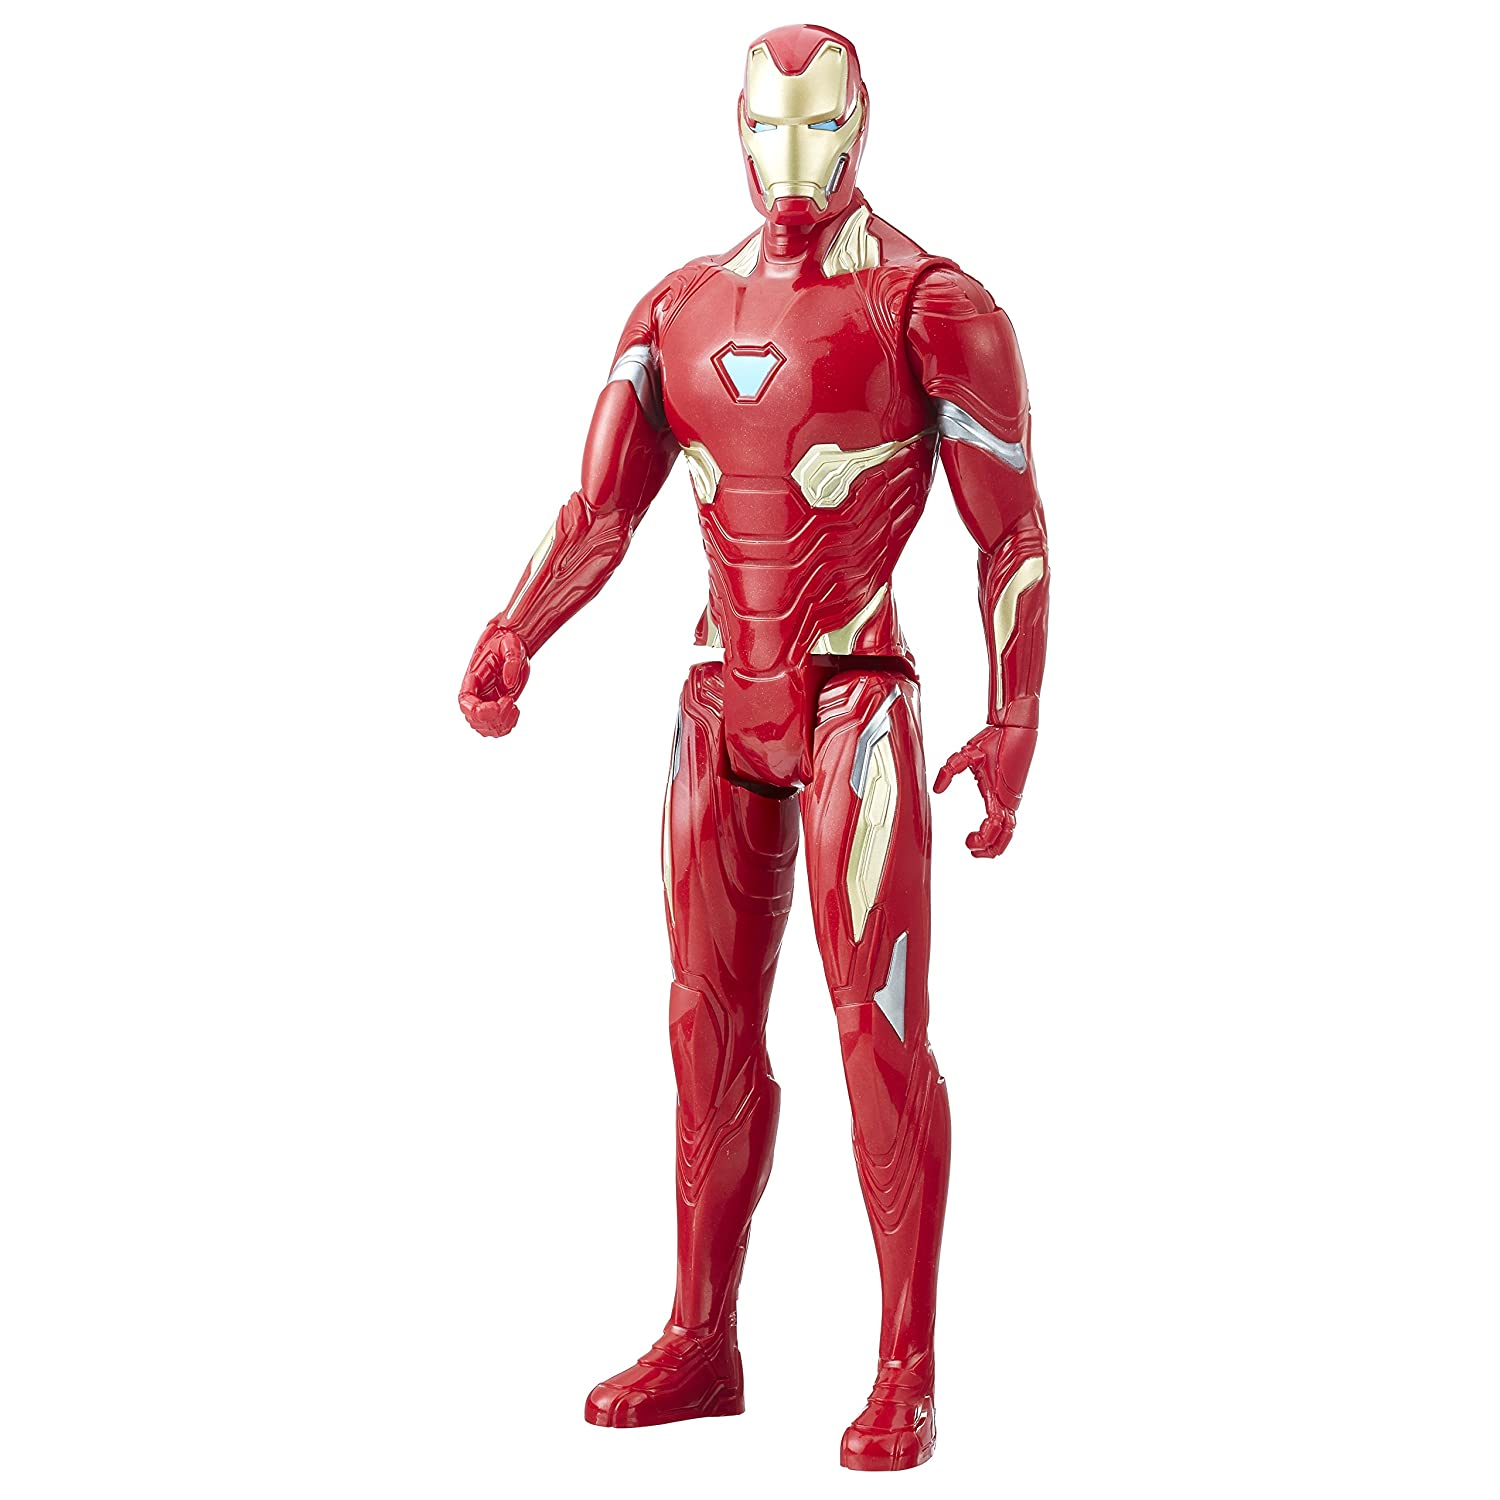 Avengers Marvel Infinity War Titan Hero Series Iron Man with Titan Hero Power FX Port Hasbro E1410 Action Figures